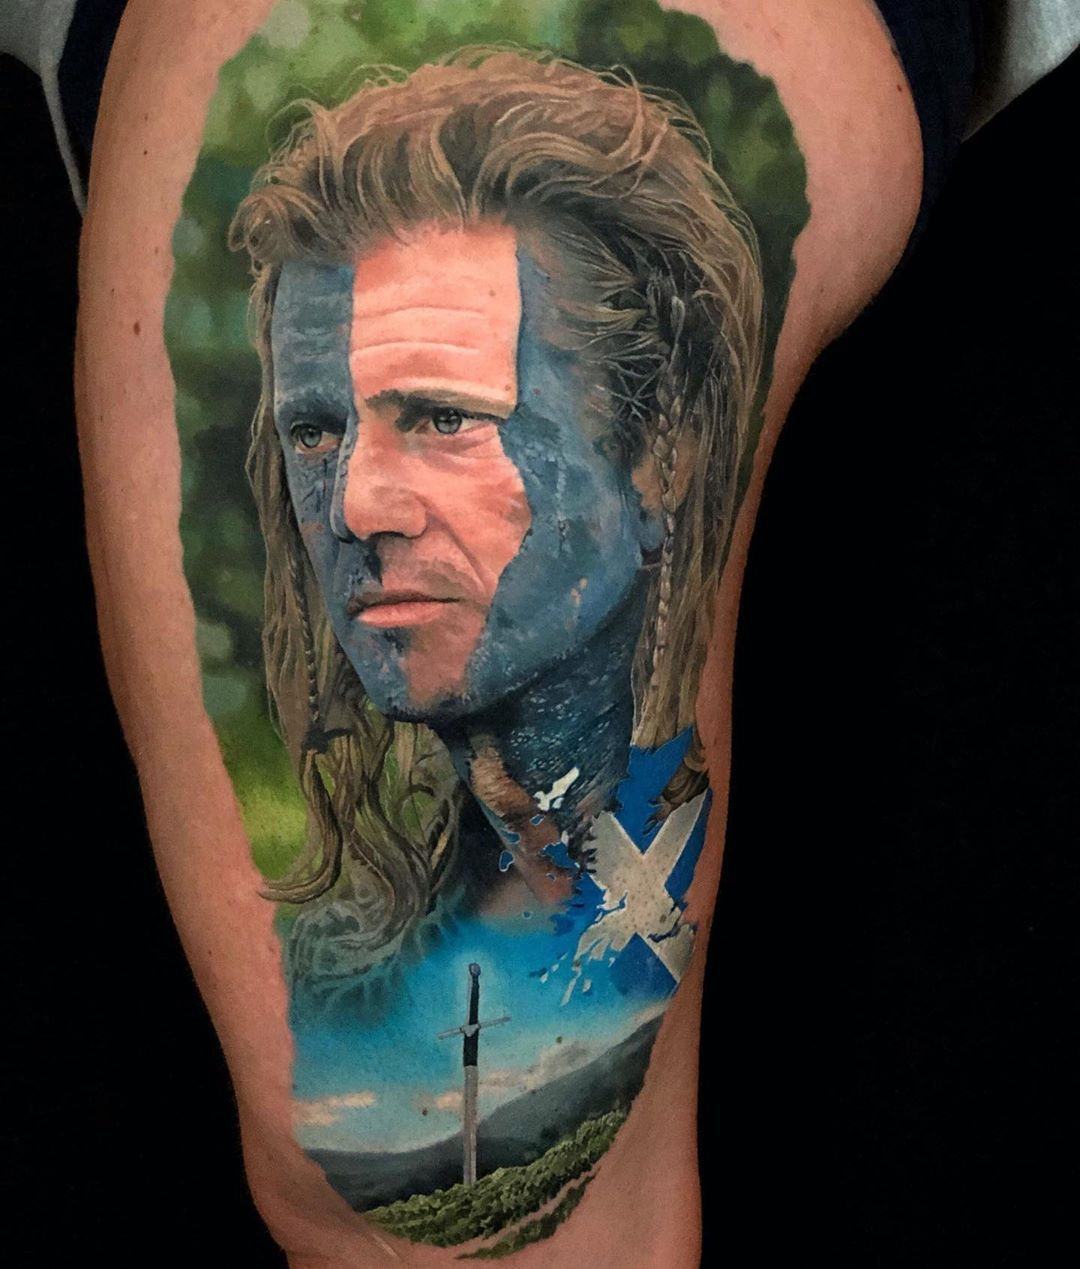 Mel Gibson Tattoo - Braveheart movies